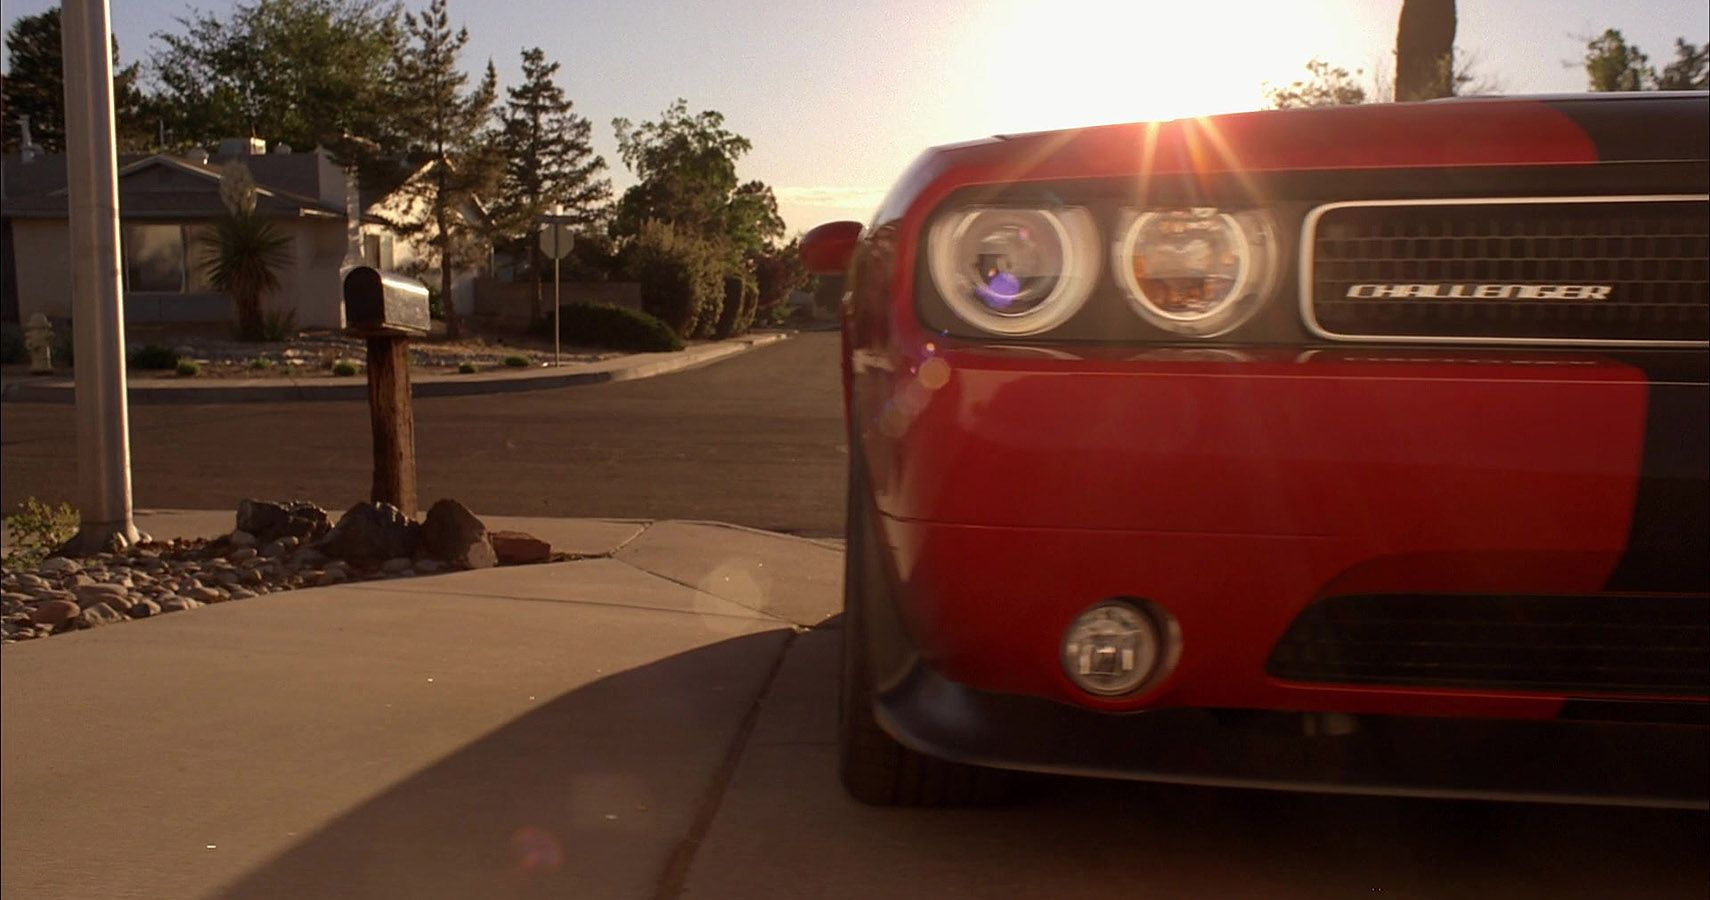 Here's What Happened To The Dodge Challenger From Breaking Bad